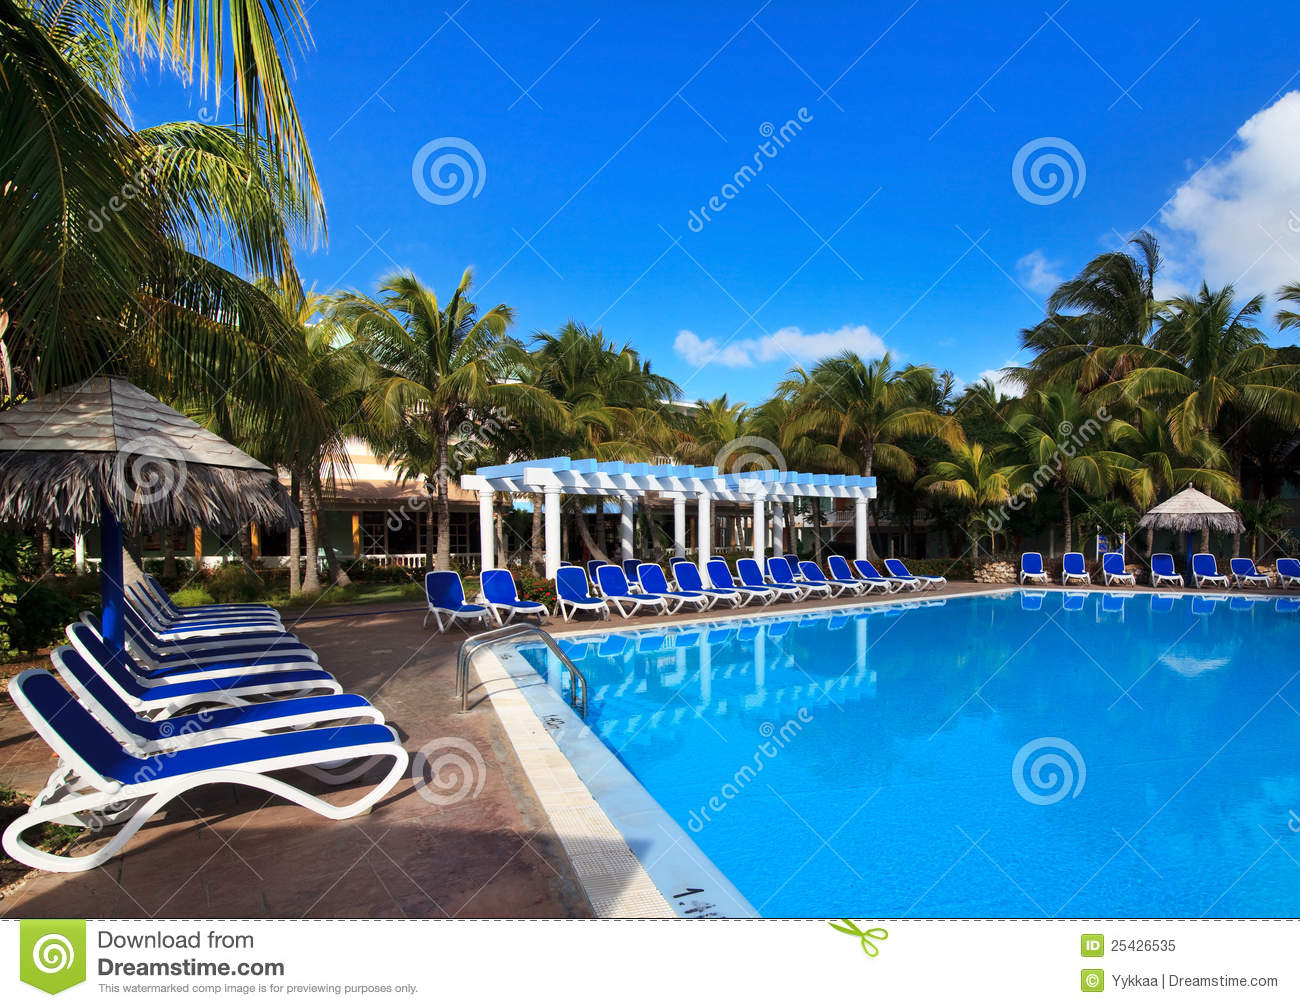 Pool of hotel Melia Cayo Guillermo.